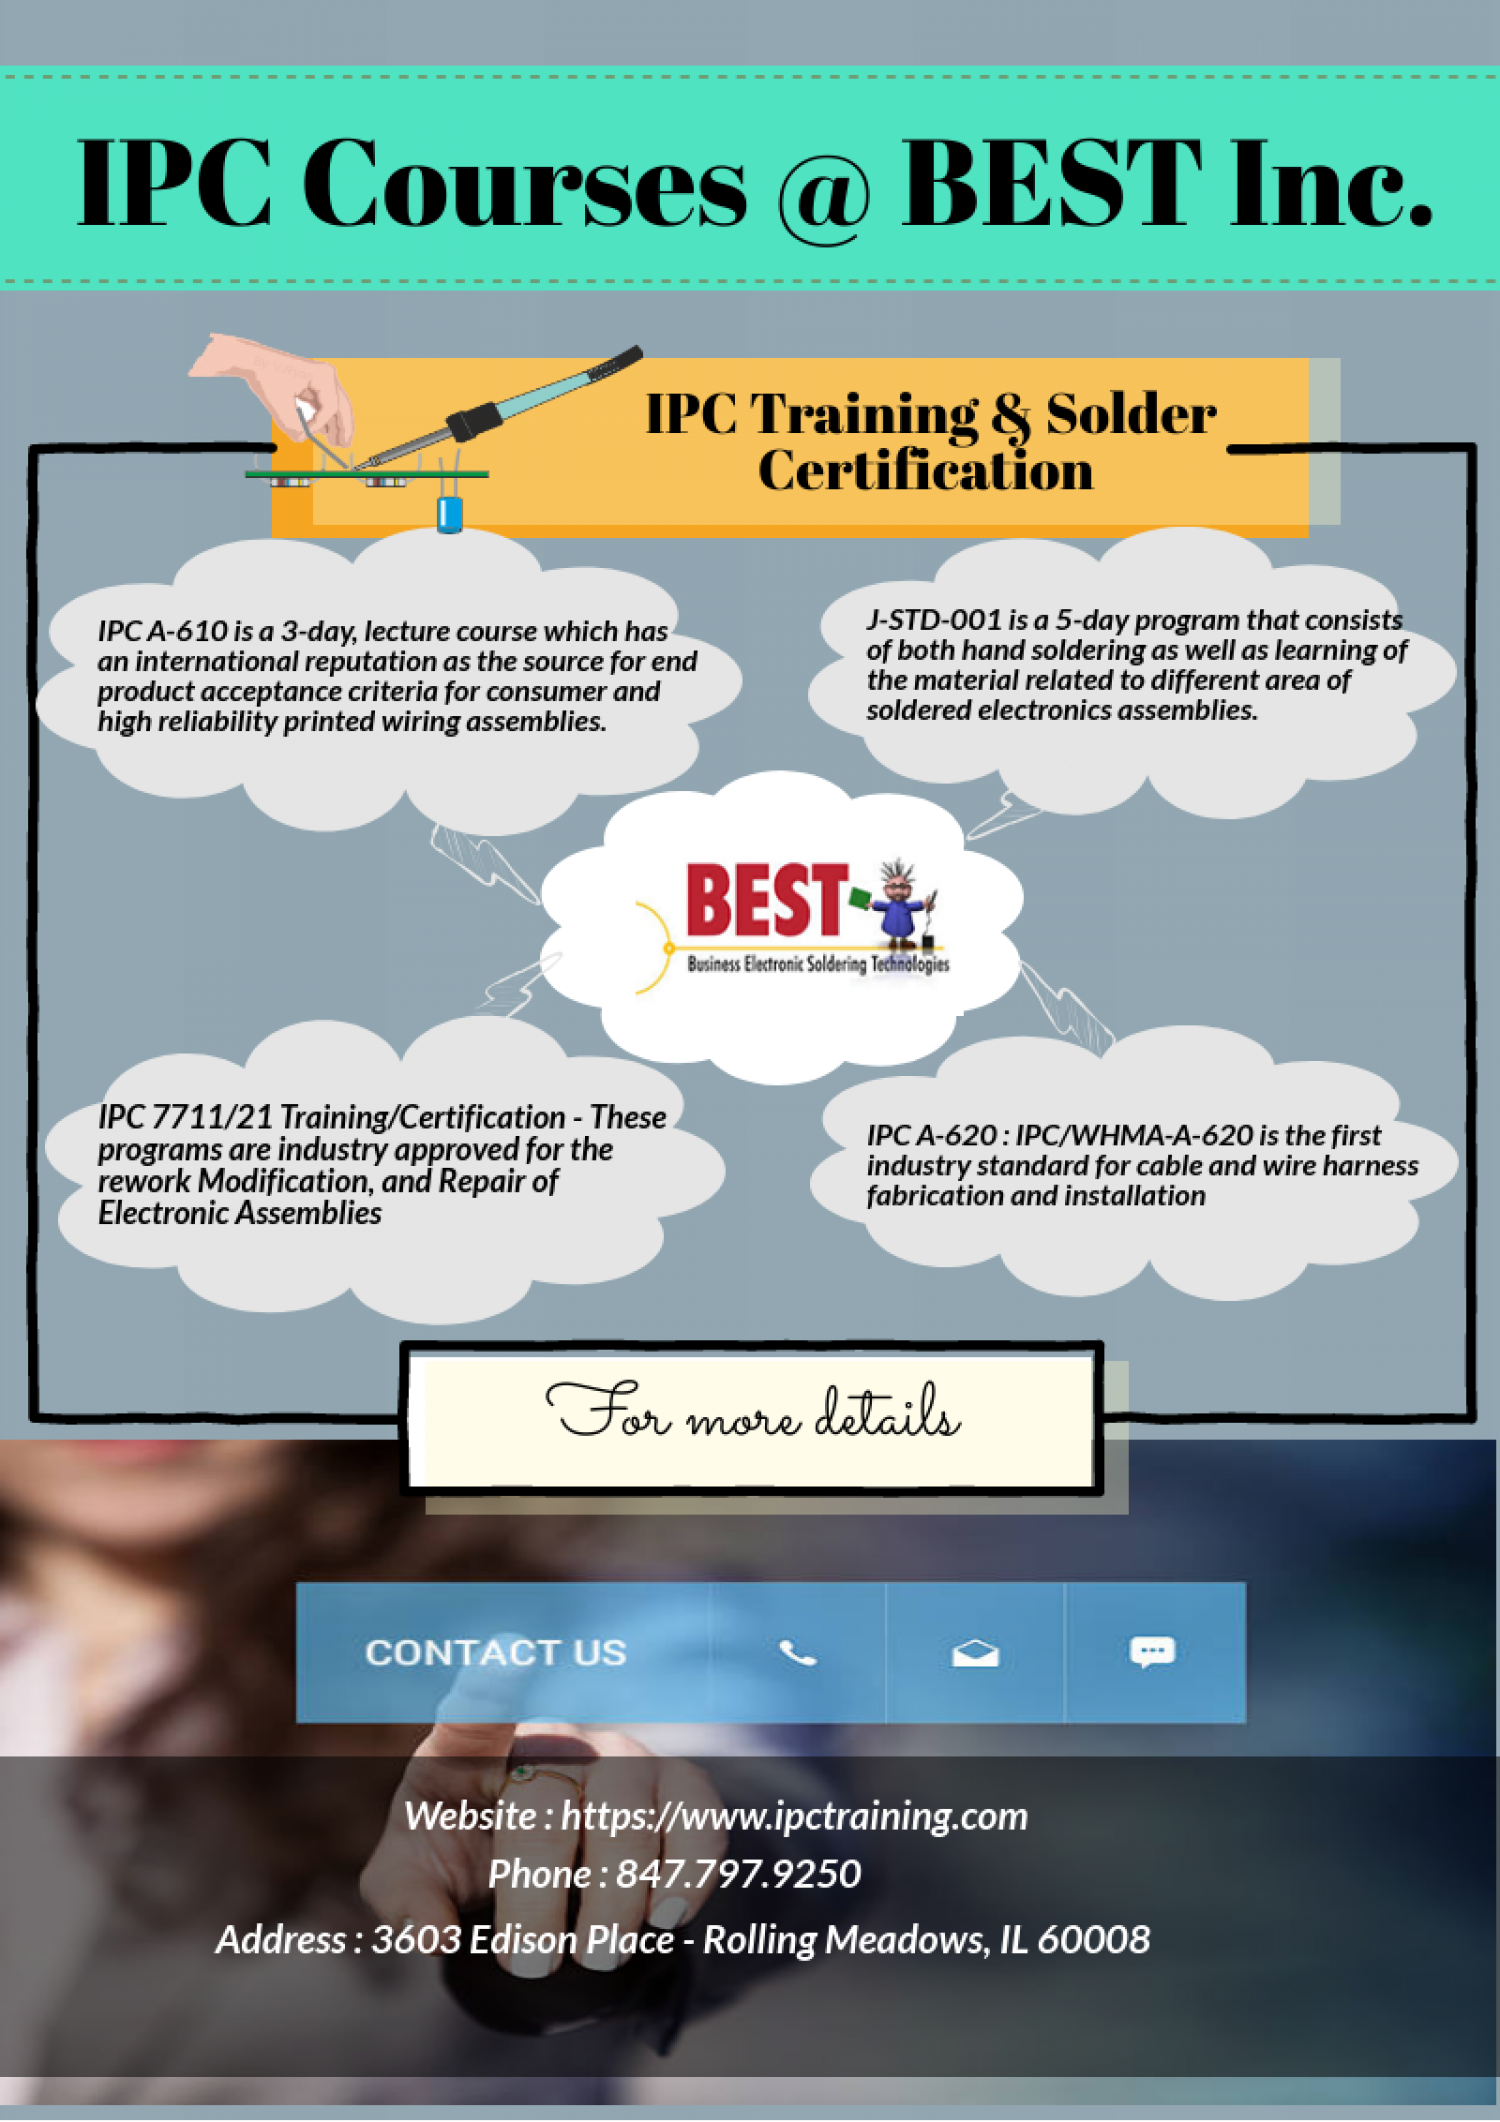 Know The Different Types of IPC Certification Courses at BEST Inc. Infographic